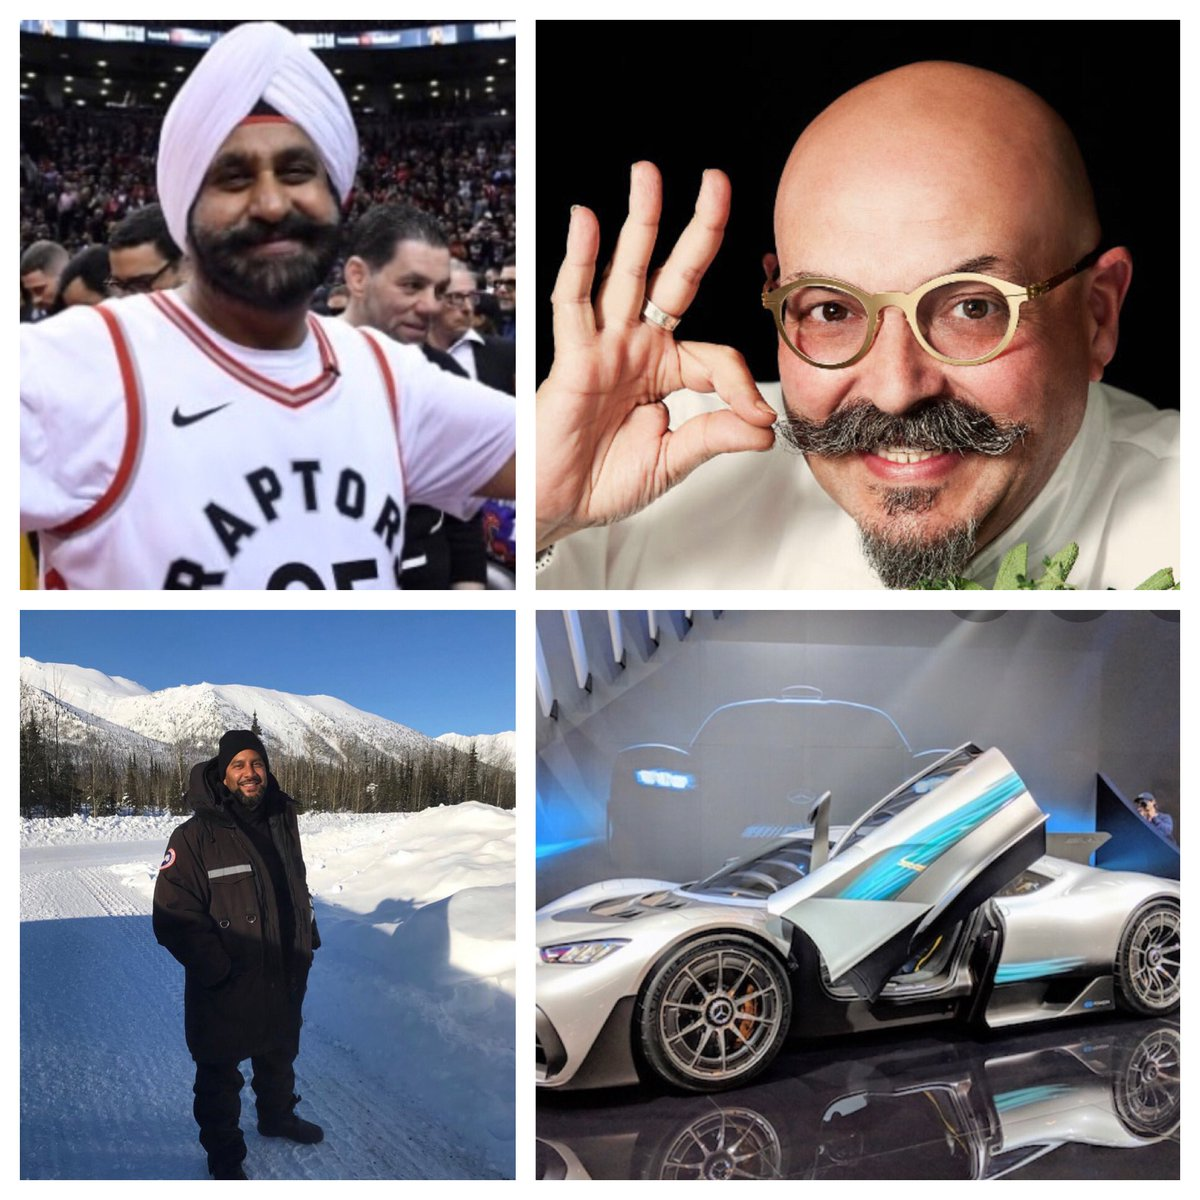 Good Tuesday morning friends🌞. Today on @BTtoronto @superfan_nav on his @Hoophall honour! @ChefCapra risotto making 101. @devobrown LIVE from the Yukon and we take you inside the @autoshowcanada 🚗!